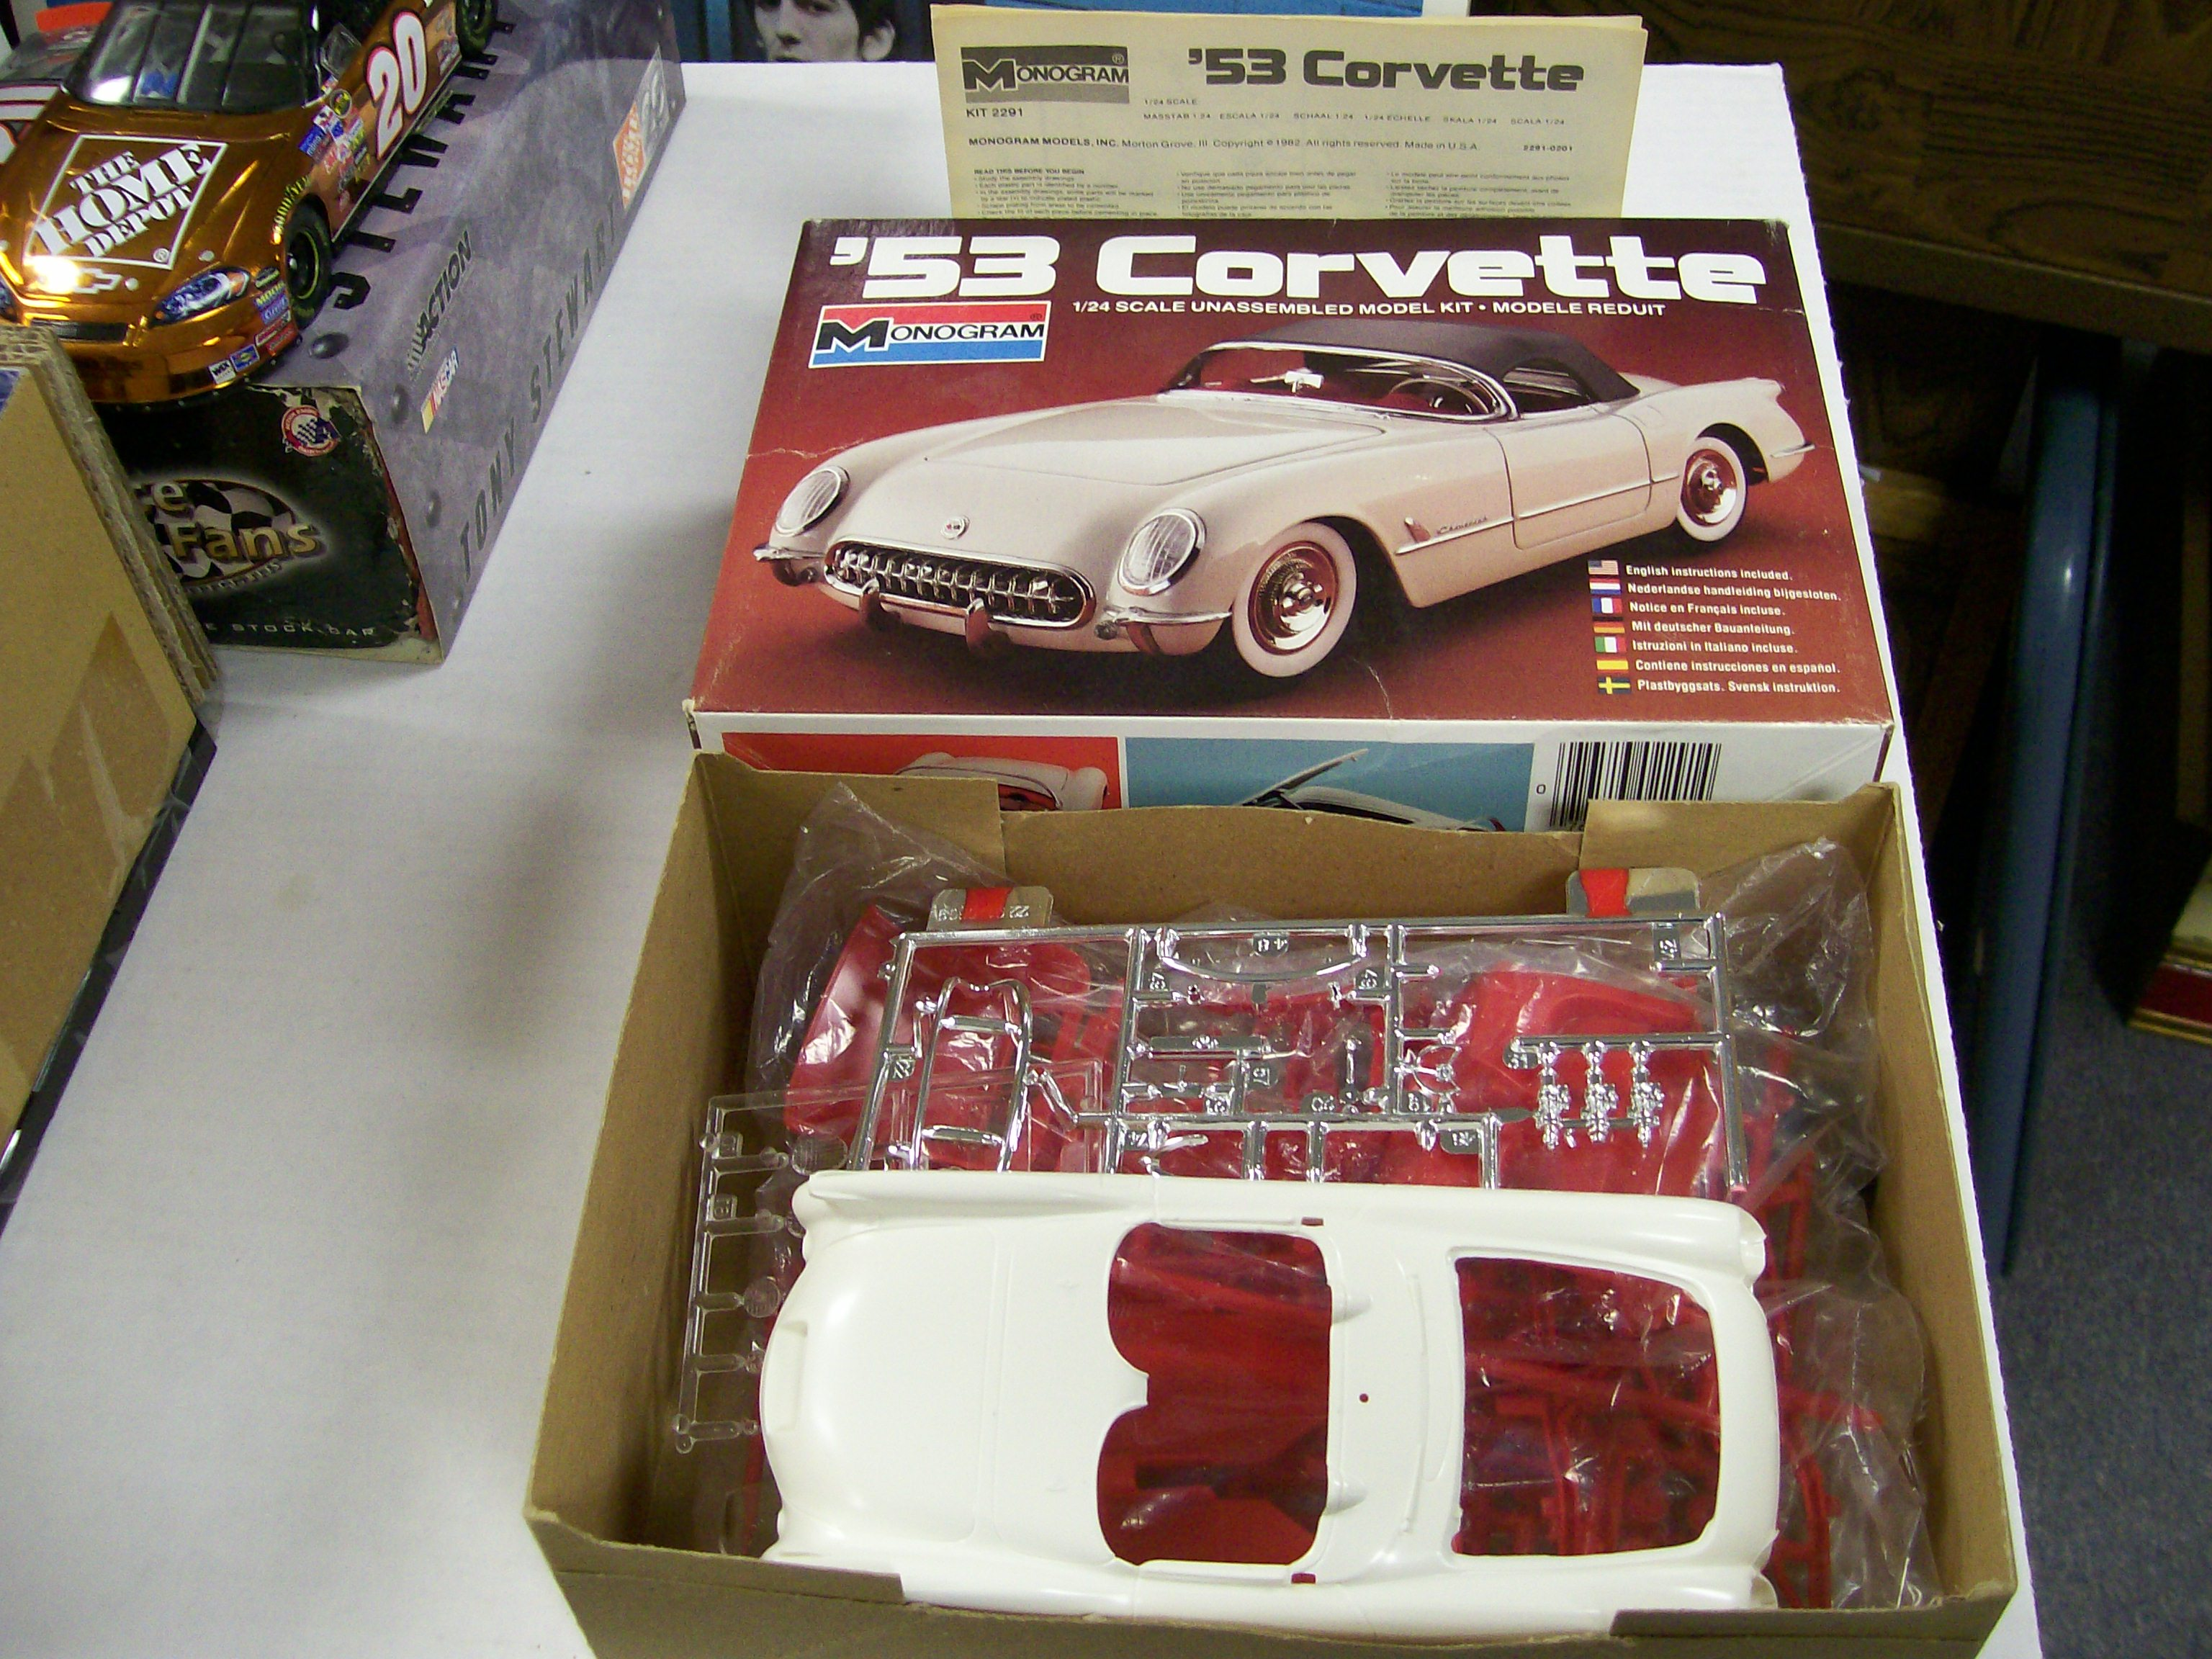 1953 Corvette 1/24 Scale Plastic Model Kit by Monogram 1982